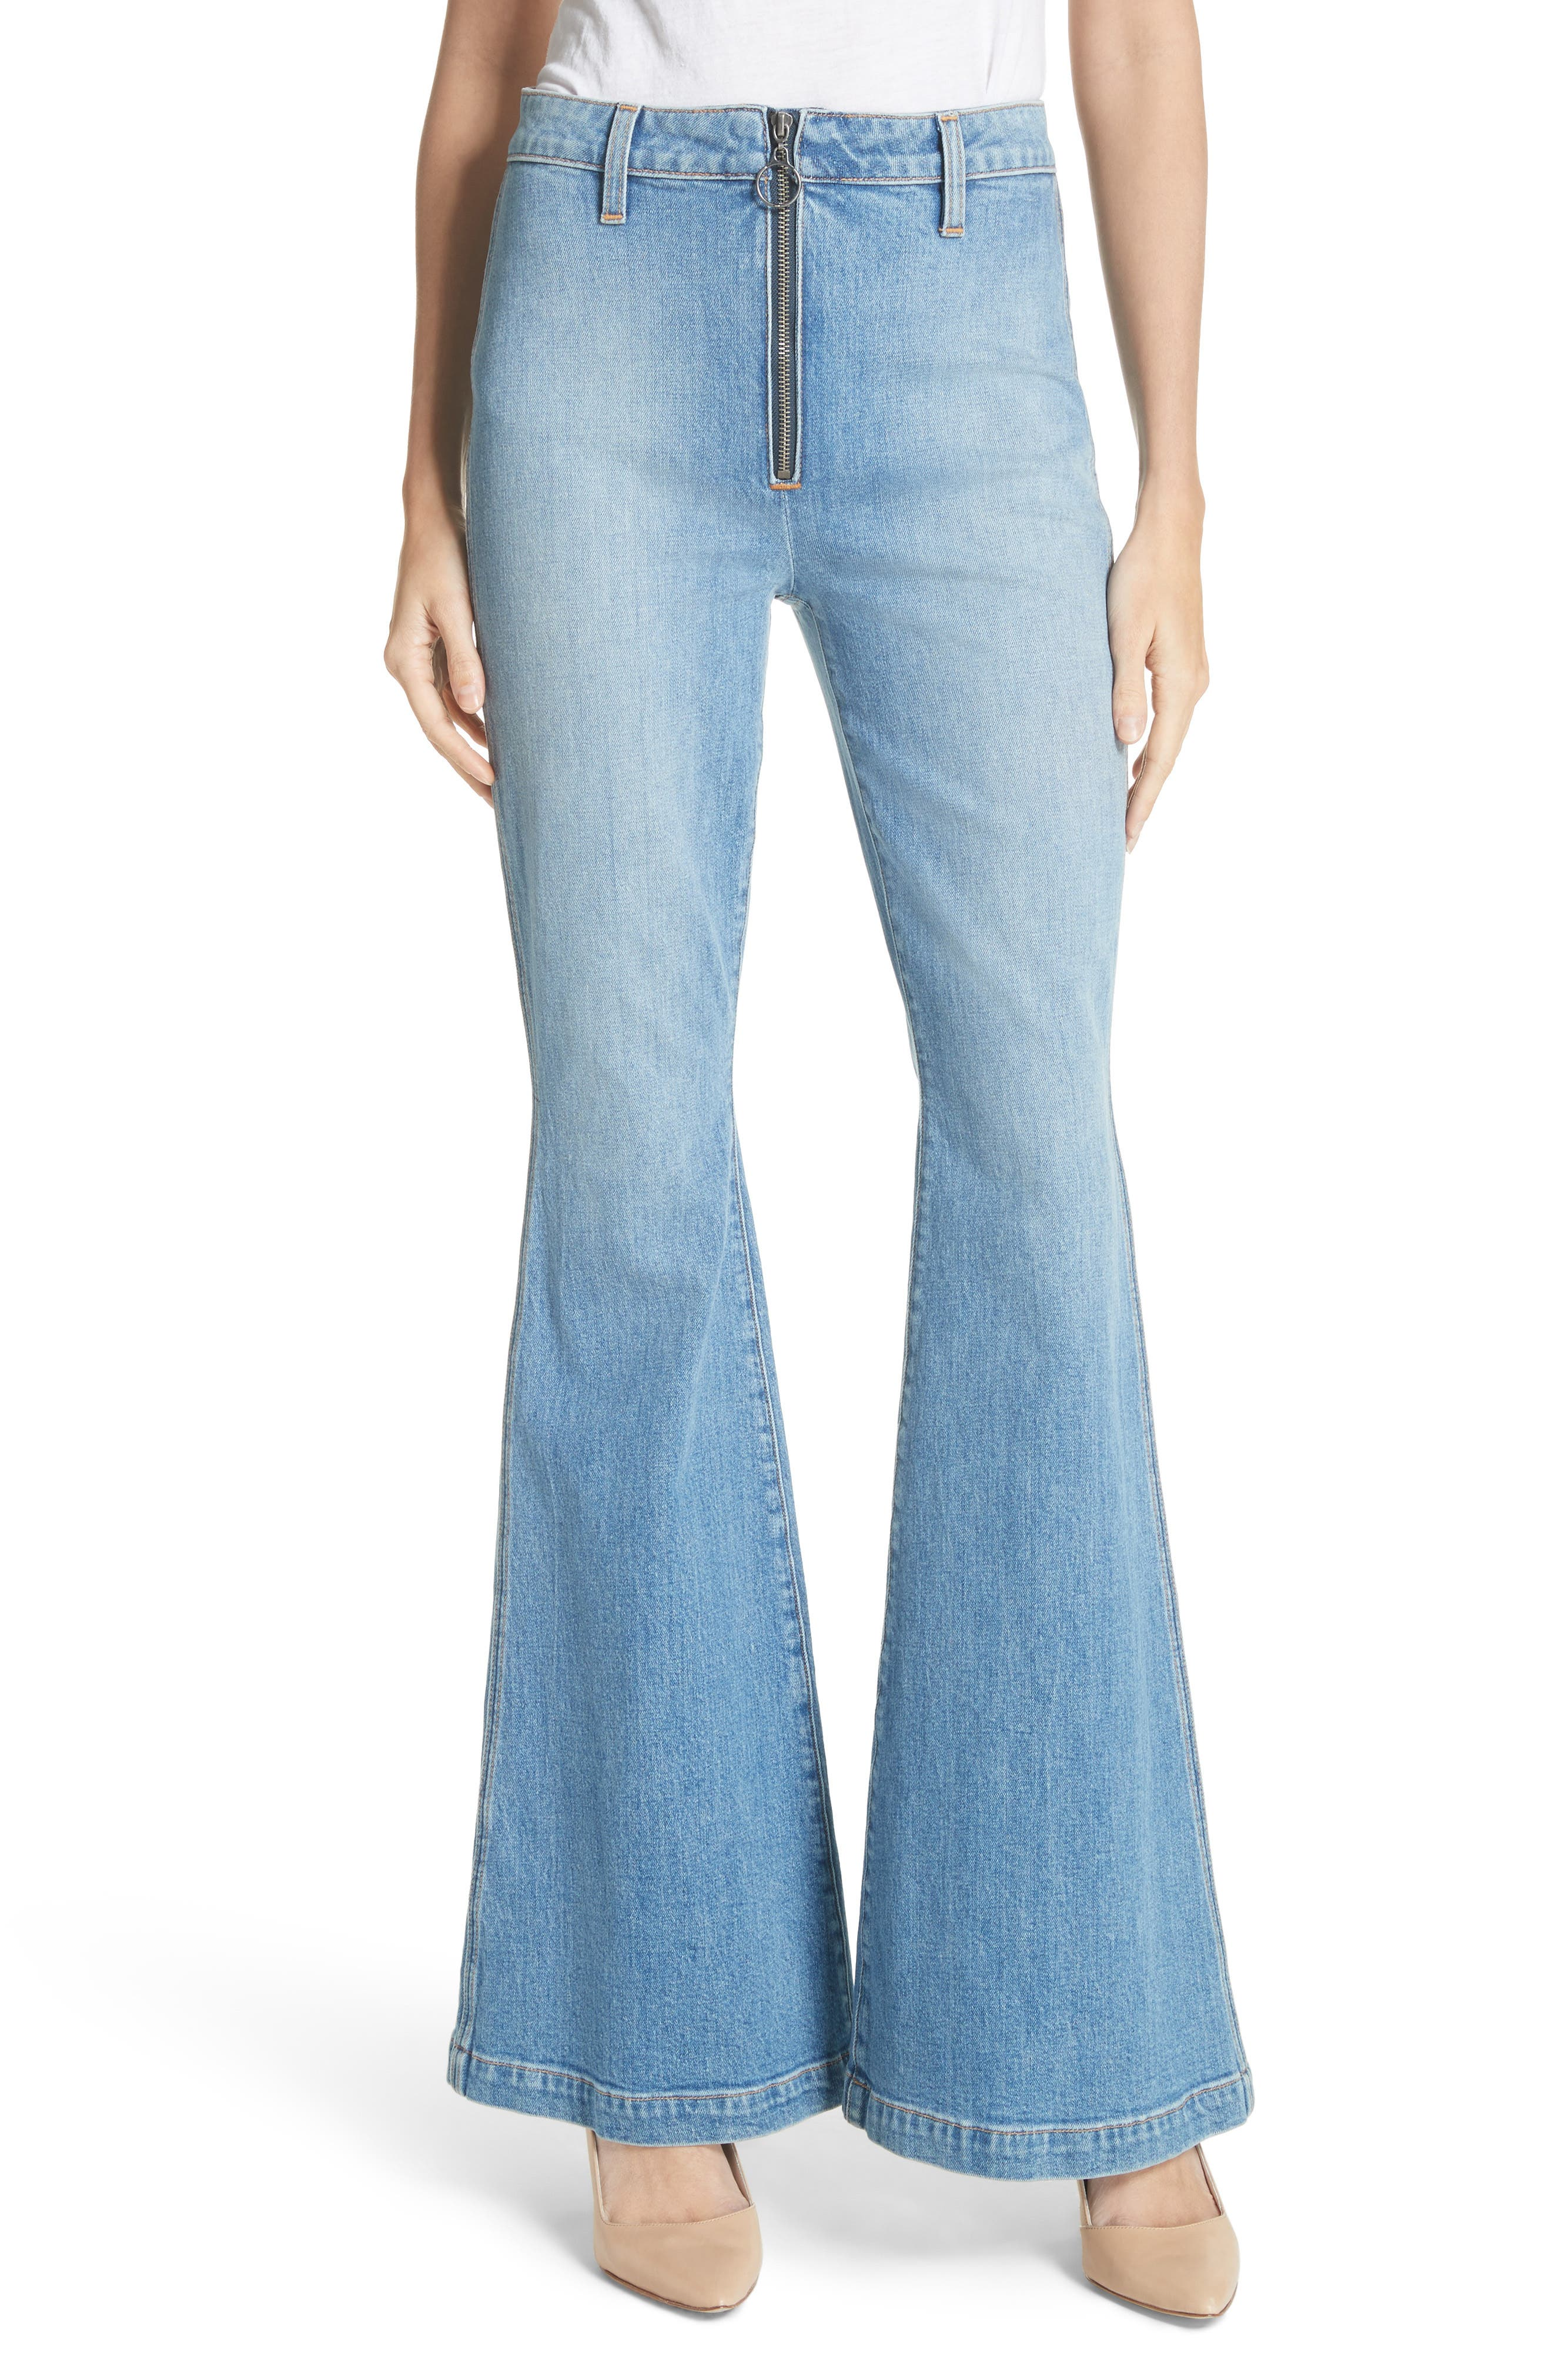 AO.LA Beautiful Exposed Zip Bell Bottom Jeans,                             Main thumbnail 1, color,                             Sweet Emotion